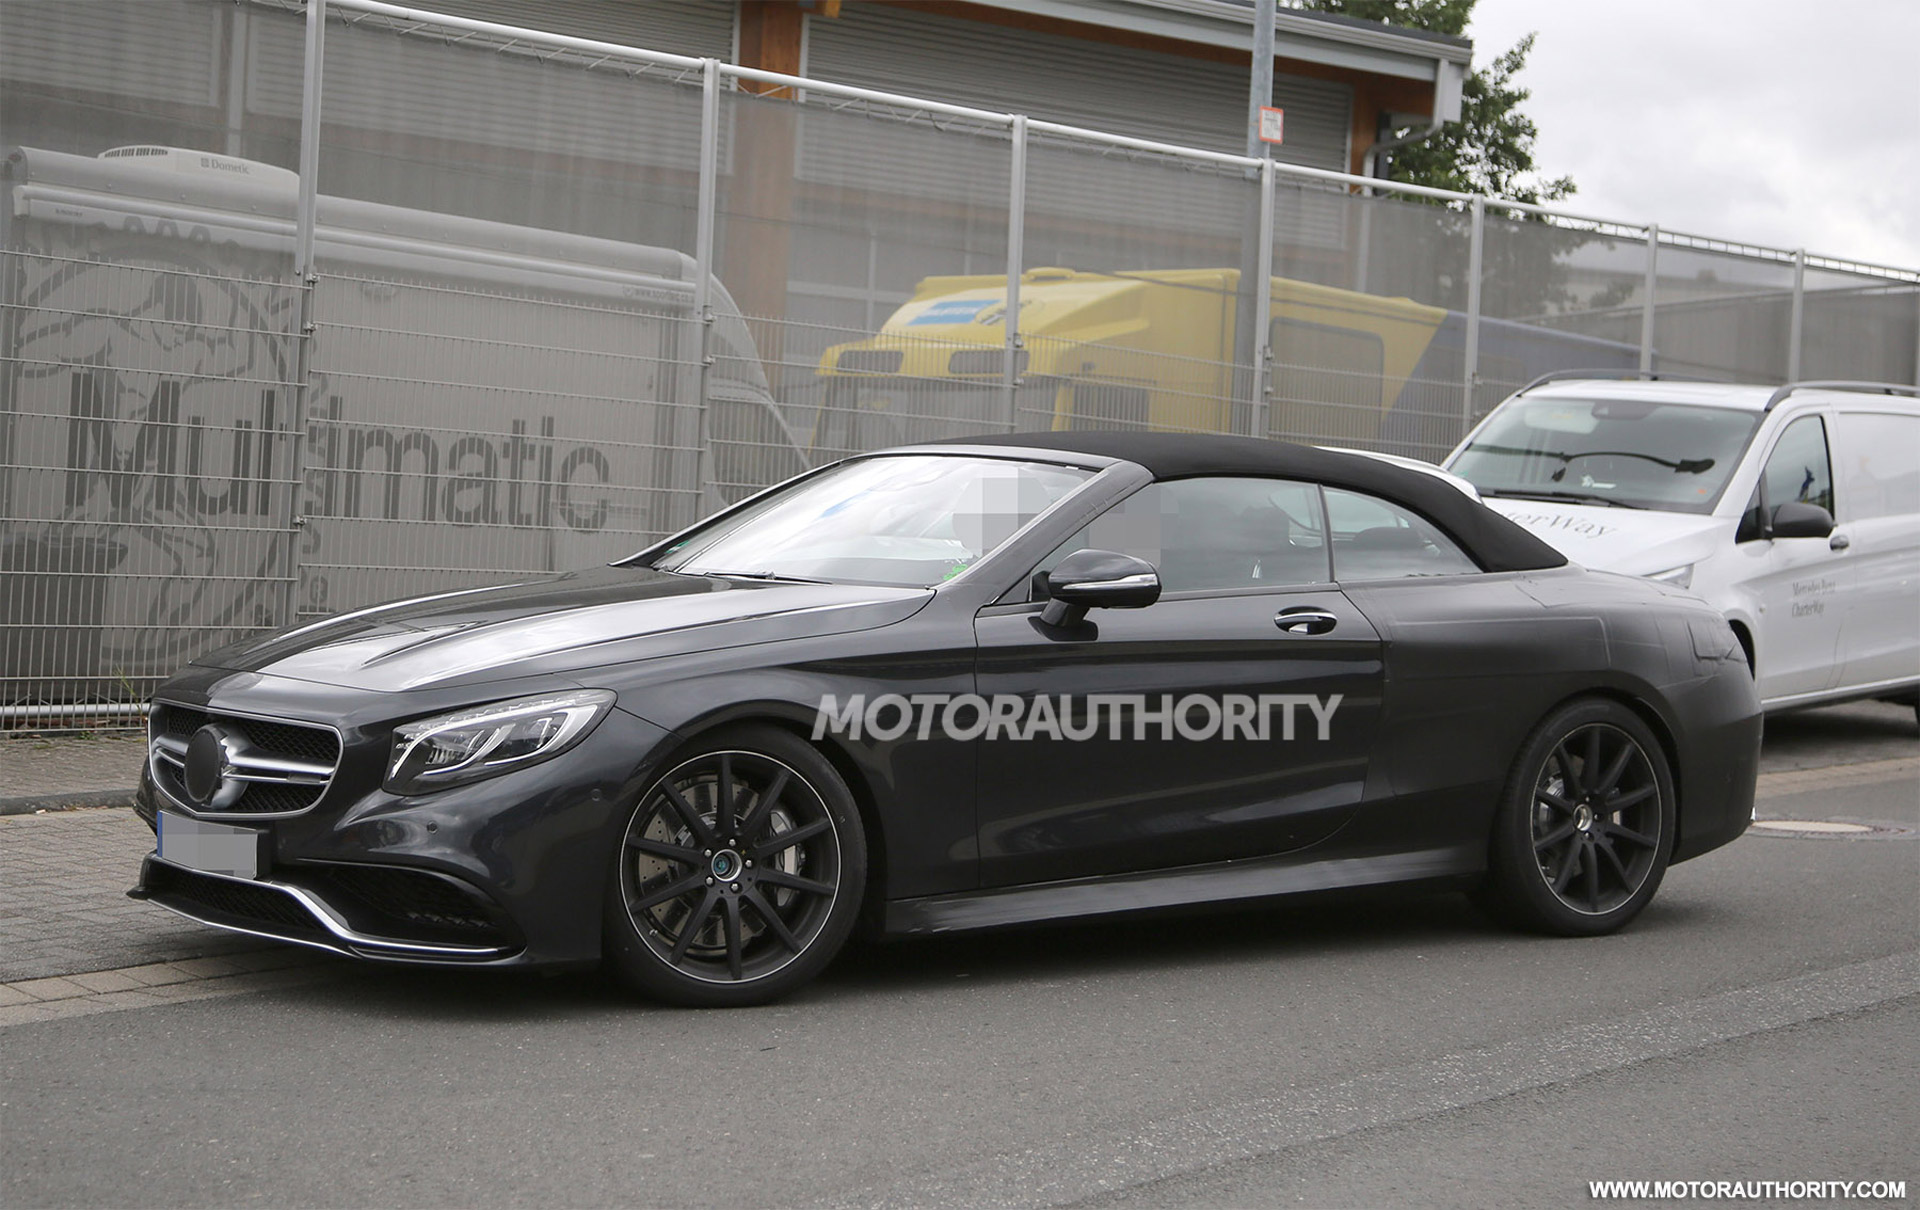 2017 Mercedes-AMG S63 Cabriolet Spy Shots